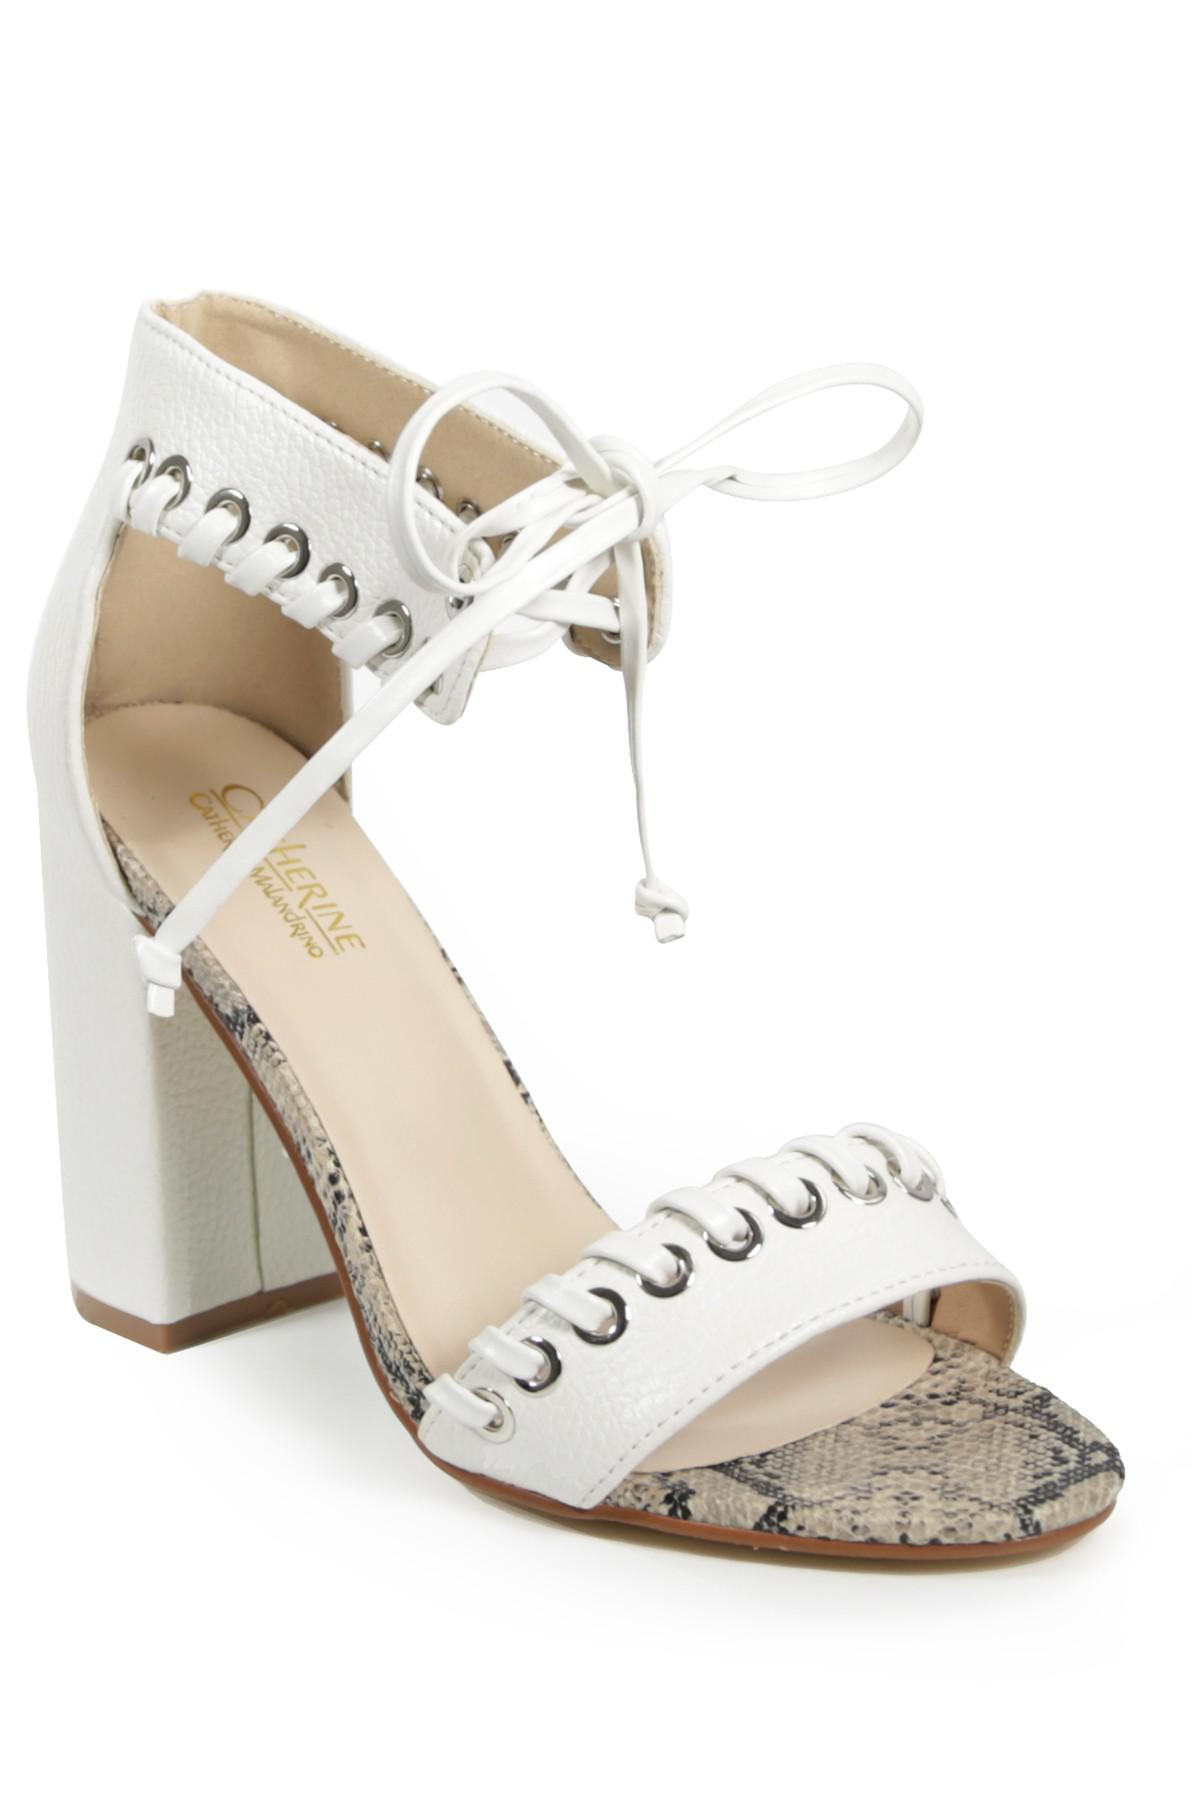 9ded6a779 Catherine Malandrino Strake Lace-up Block Heel Sandal in White - Lyst